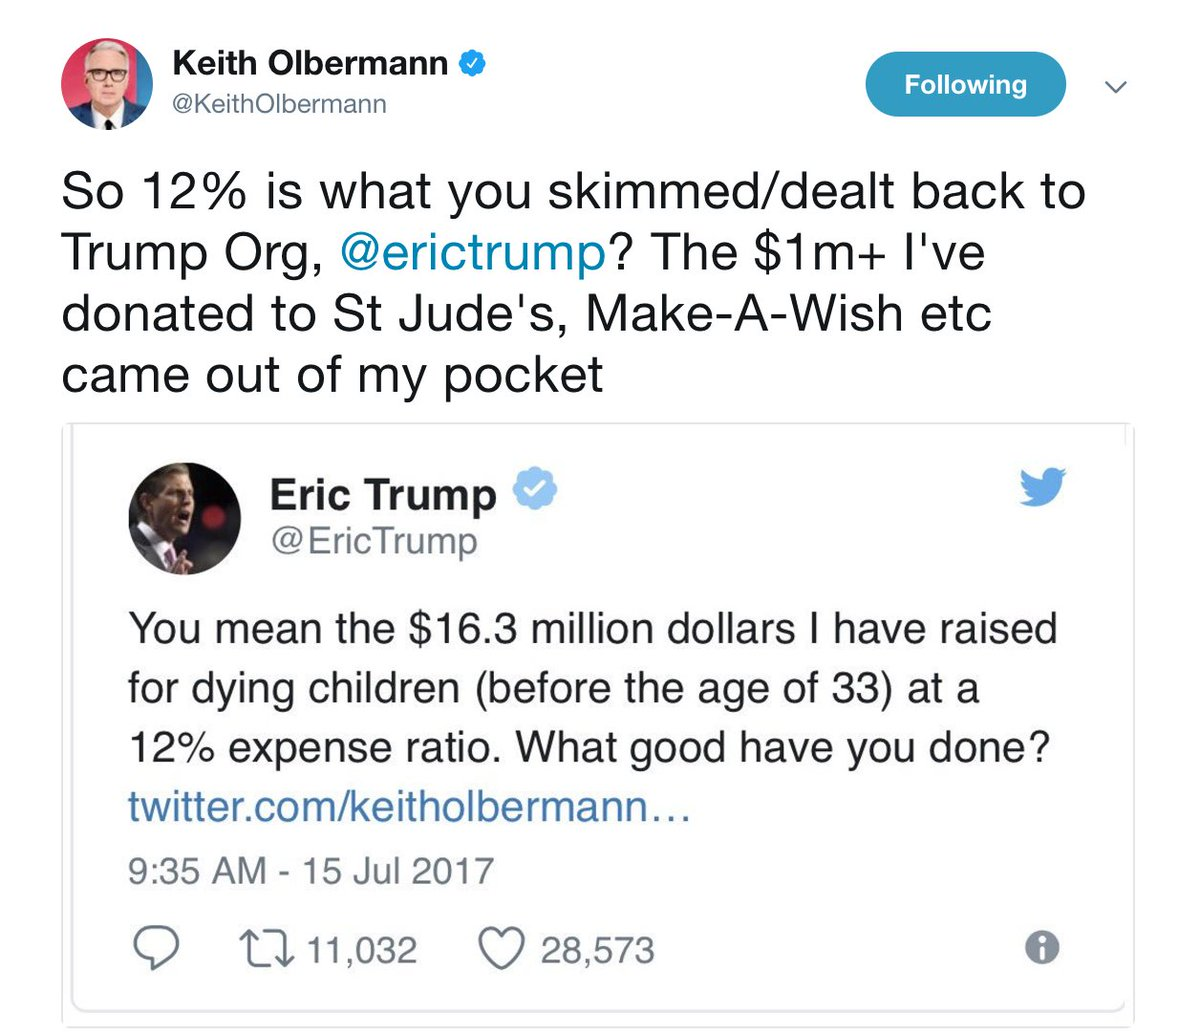 The Hill On Twitter Keith Olbermann Eric Trump Spar On Twitter Over Charitable Donations Https T Co J1b8yfsyw3 See more ideas about keith olbermann, keith, gq. twitter